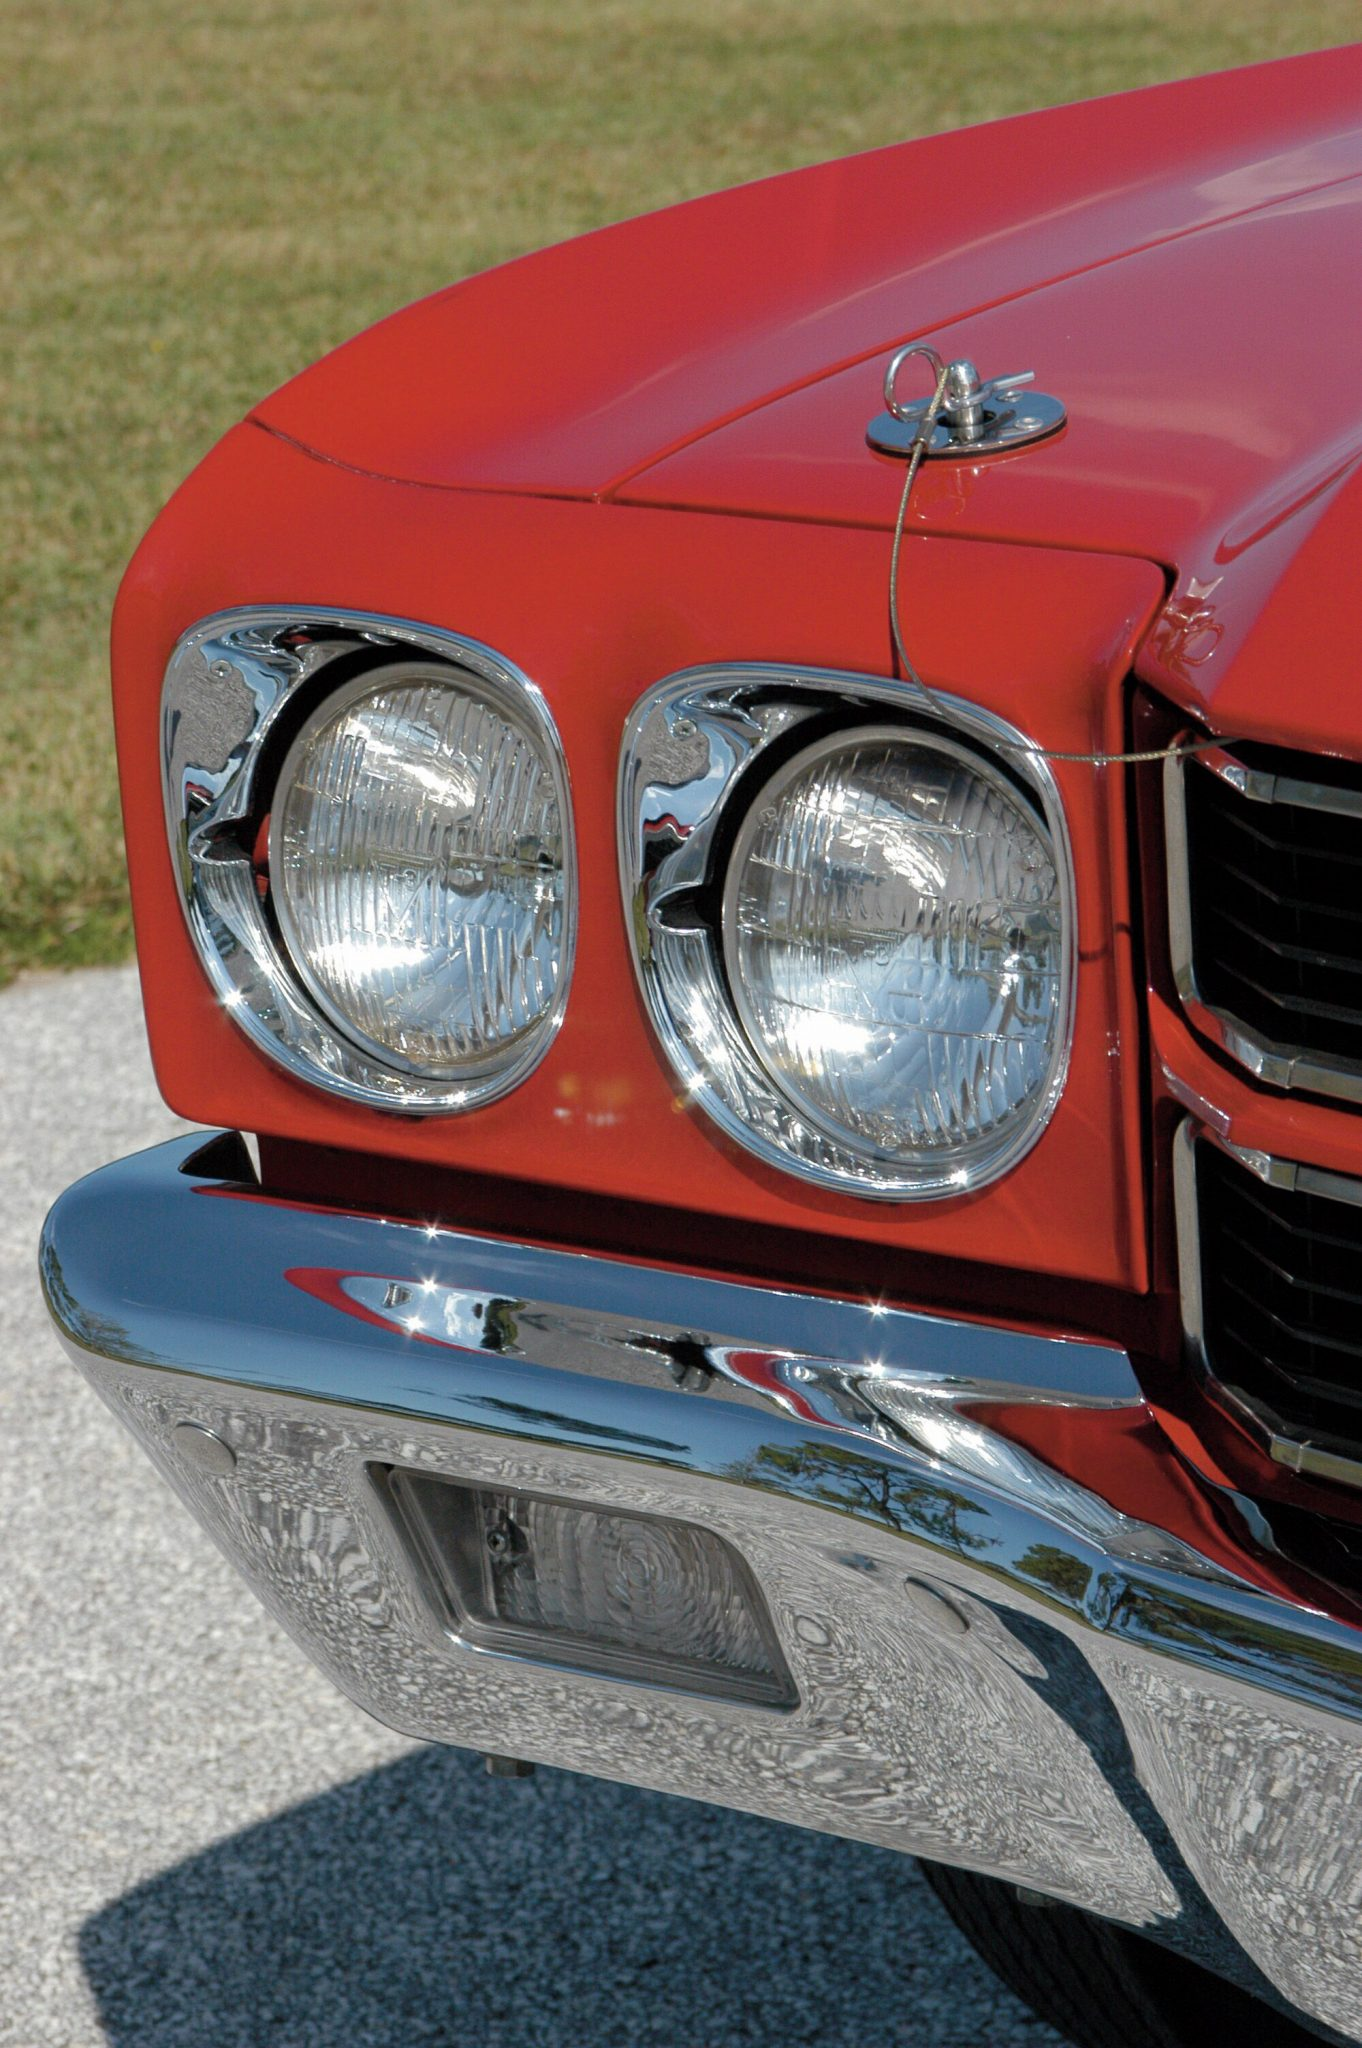 1970 Chevelle LS6 Headlamp Detail